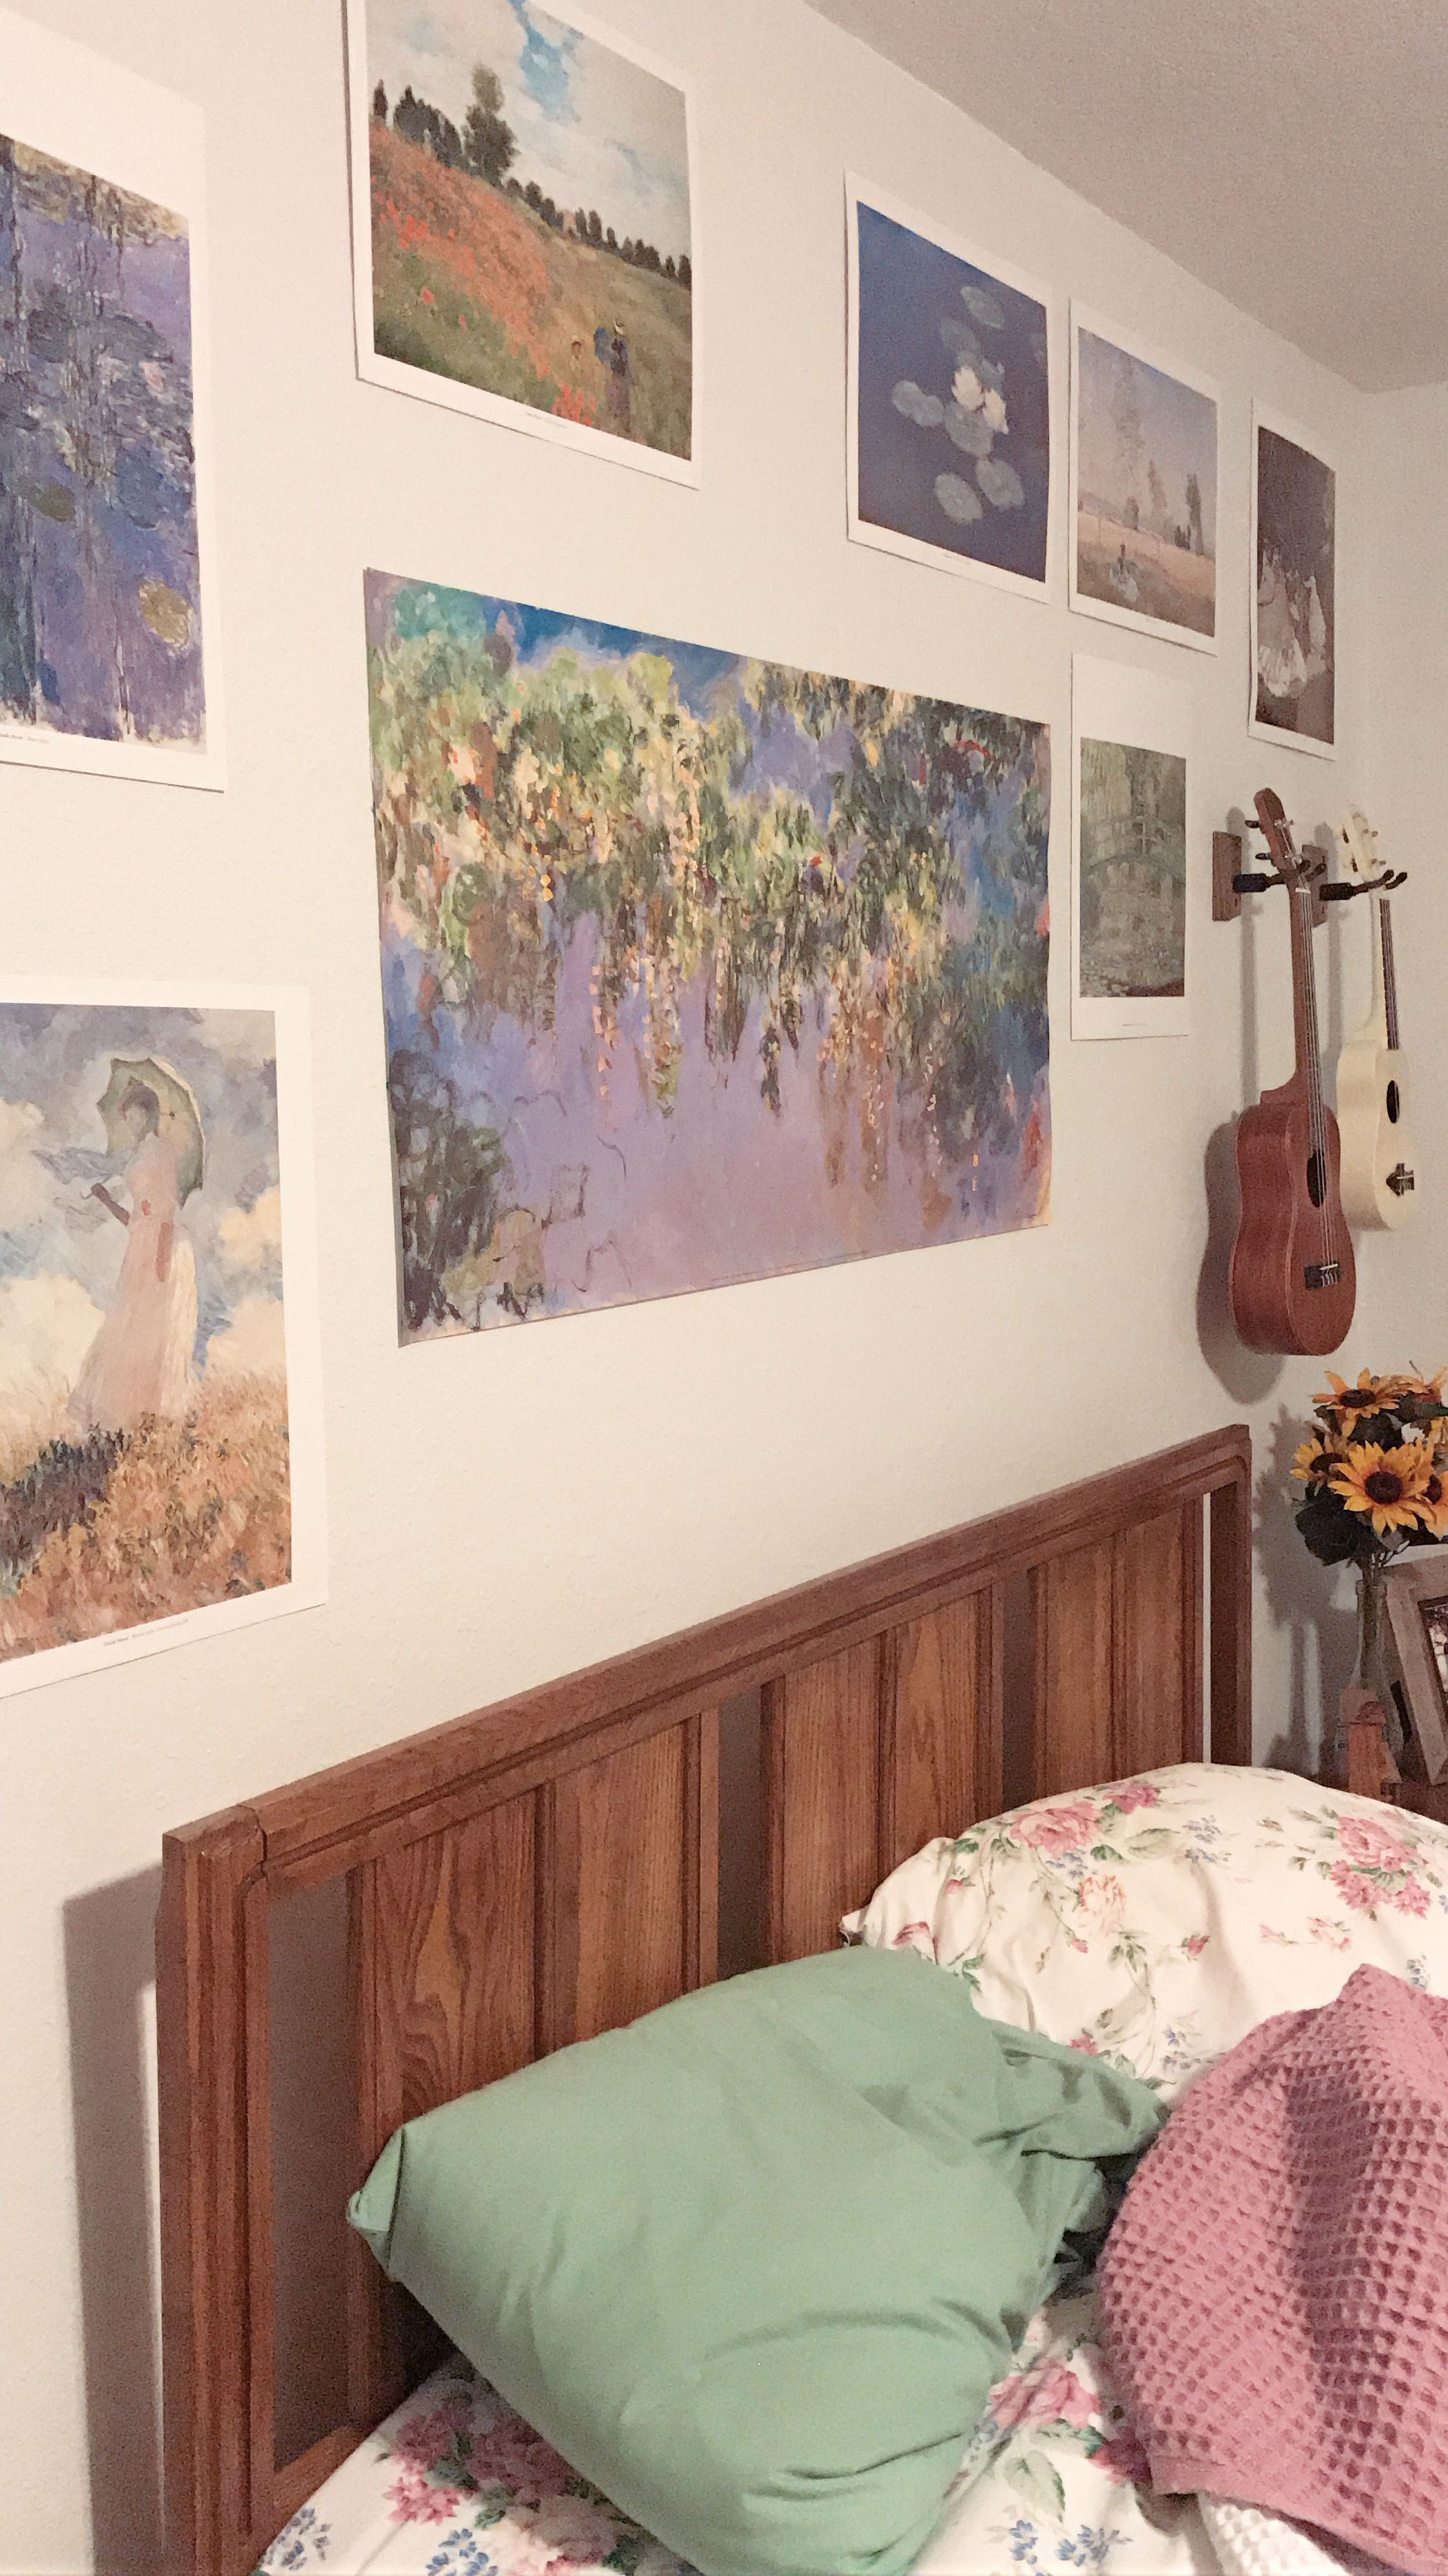 Art Hoe Room With Monet Poster Paintings